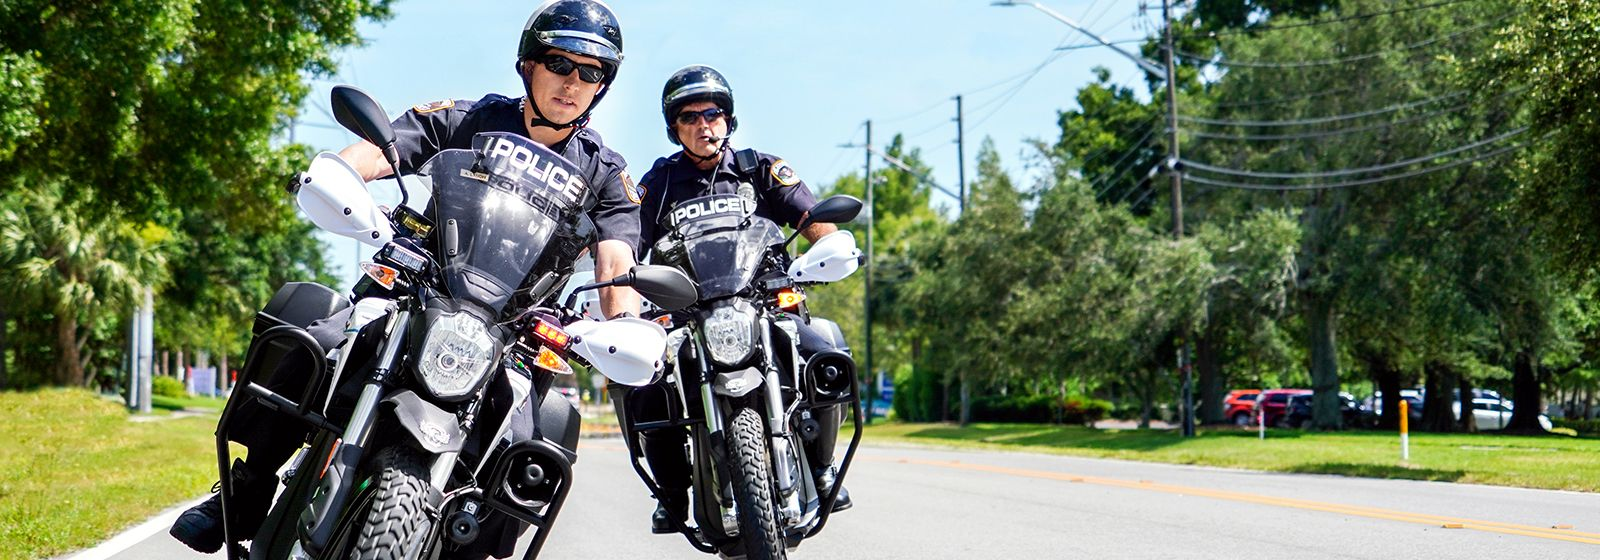 Electric police motorcycles help Florida city meet sustainability goals